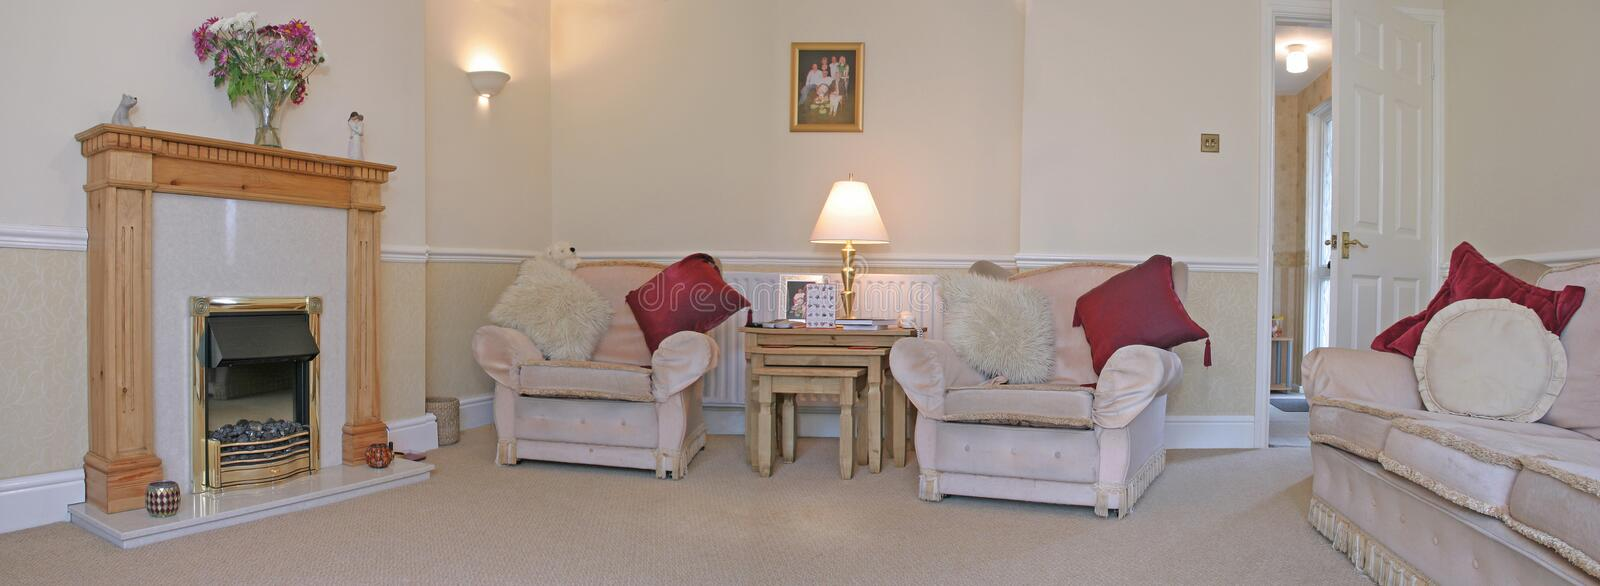 Living Room (Panoramic) royalty free stock images